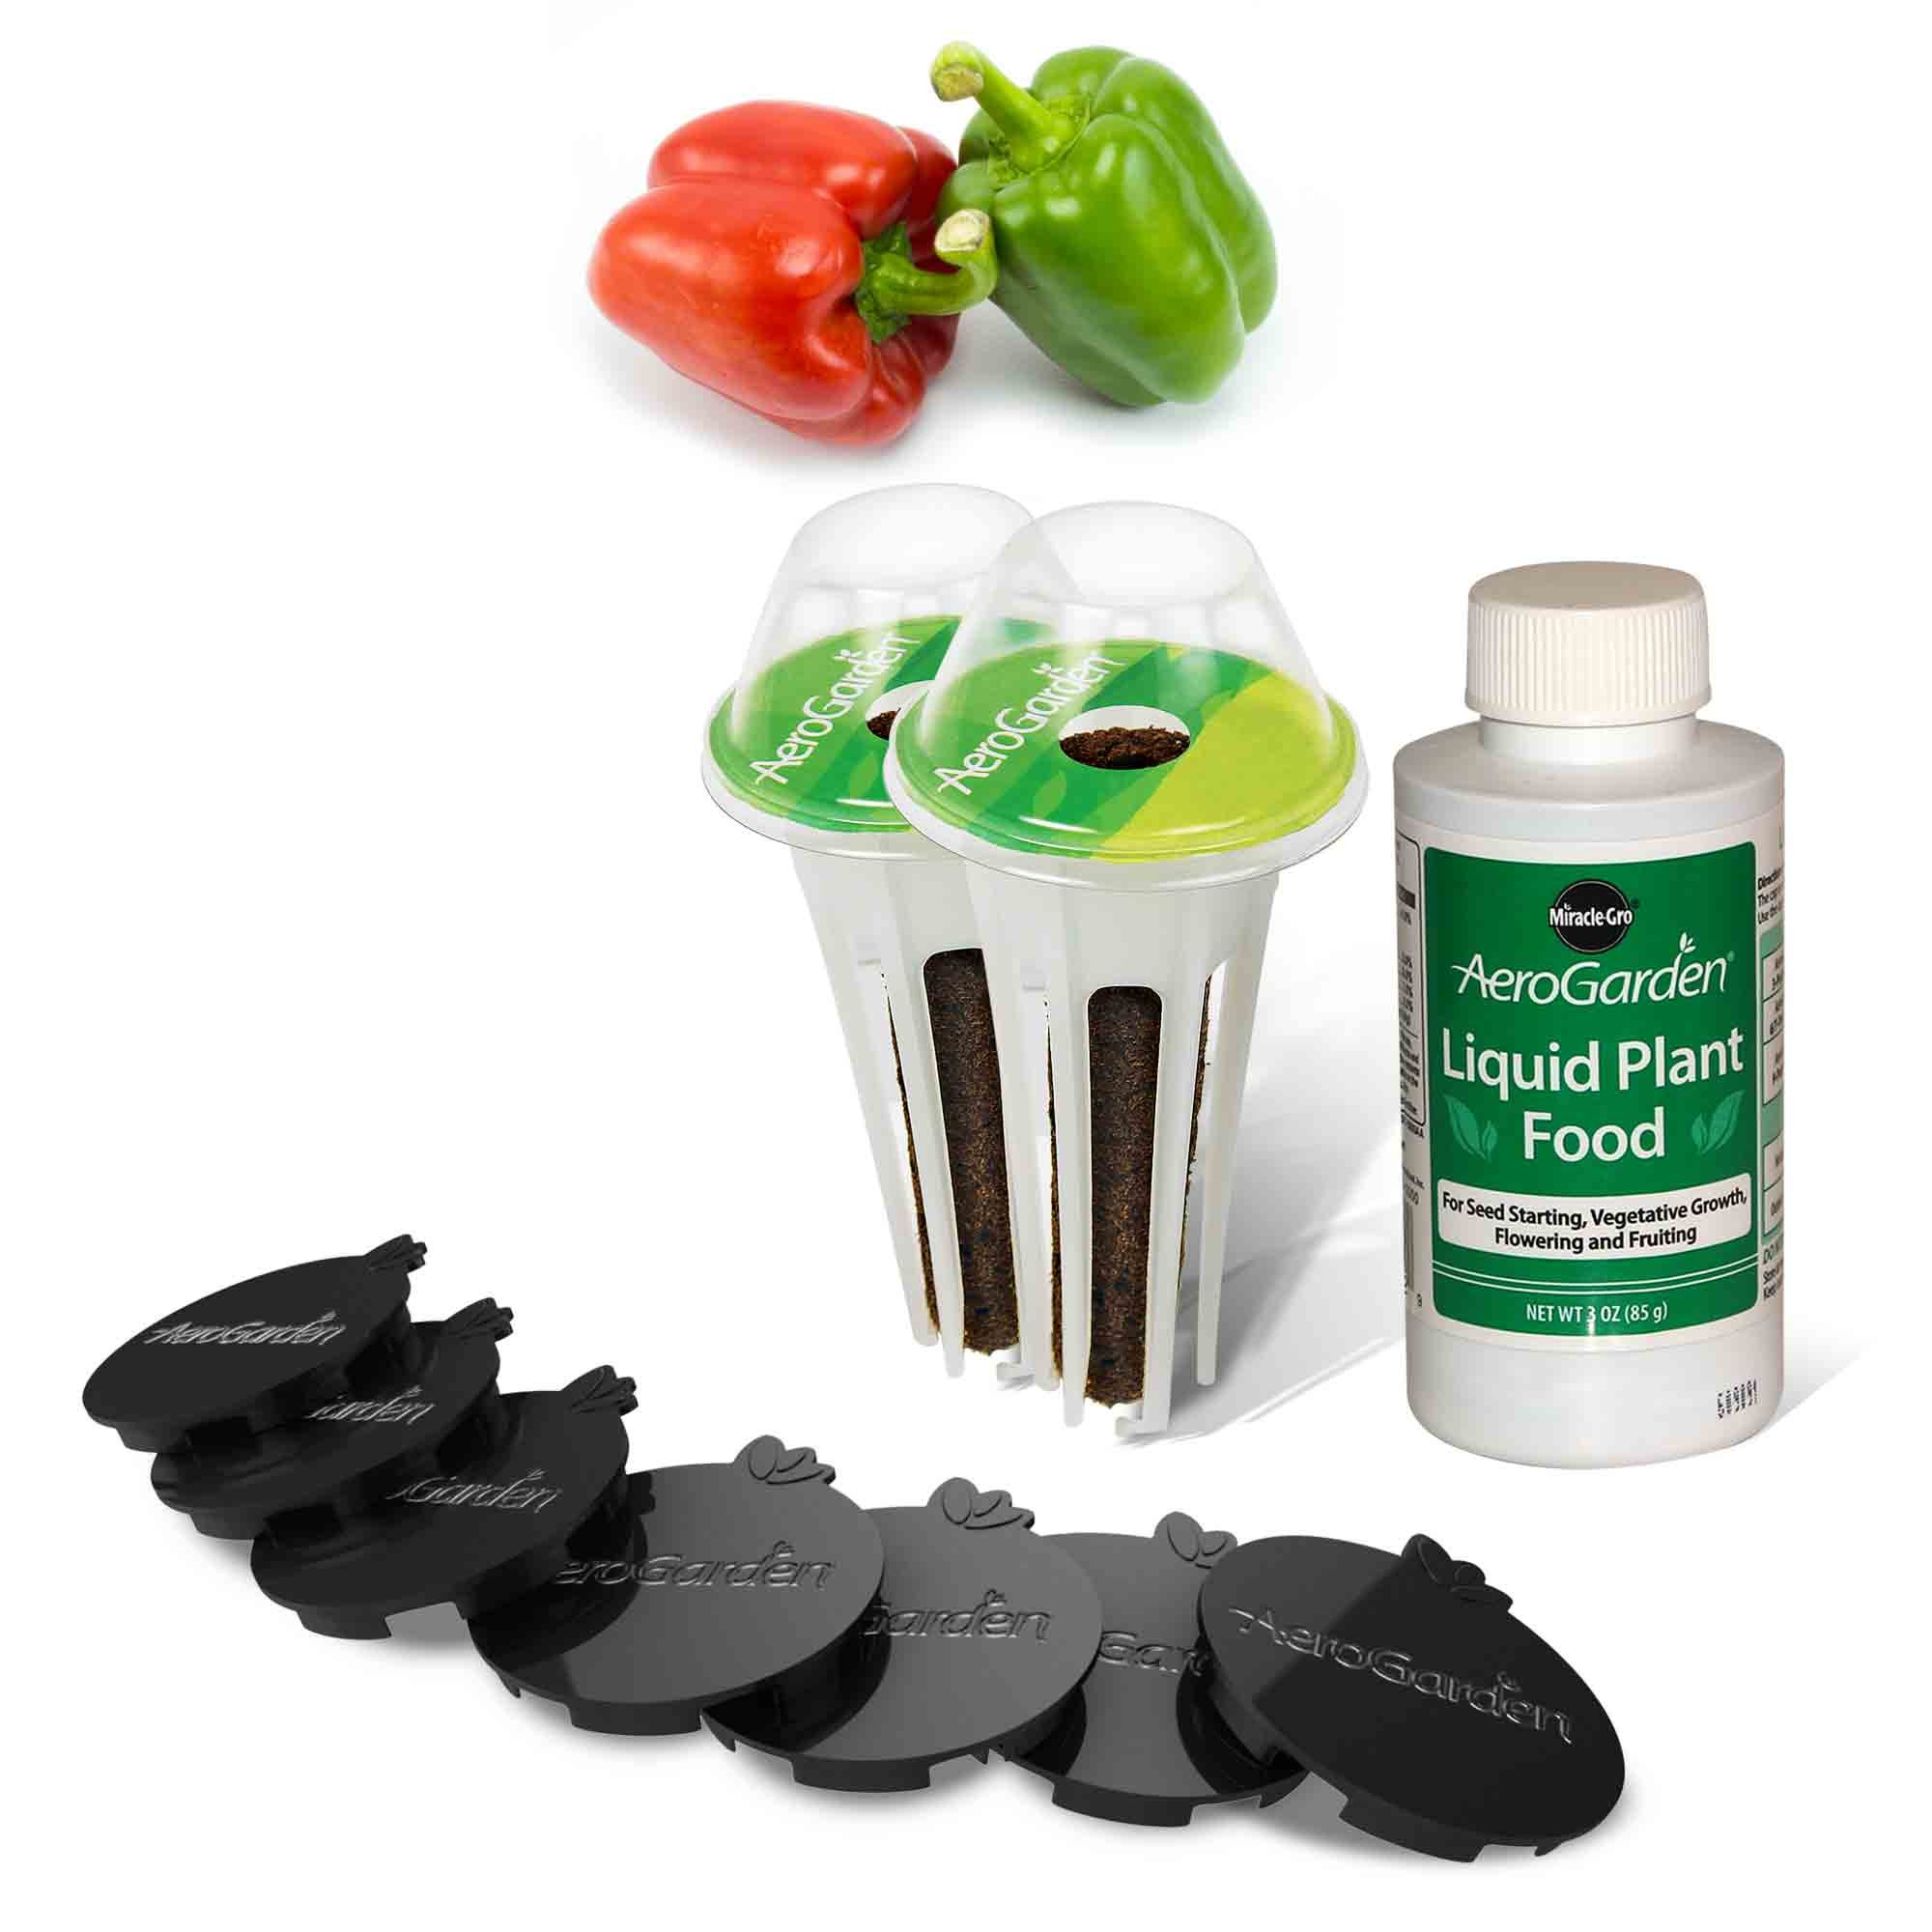 AeroGarden Sweet Bell Peppers Seed Pod Kit (2 pre-seeded Sweet Bell Pepper pods and 7 Plant Spacers)